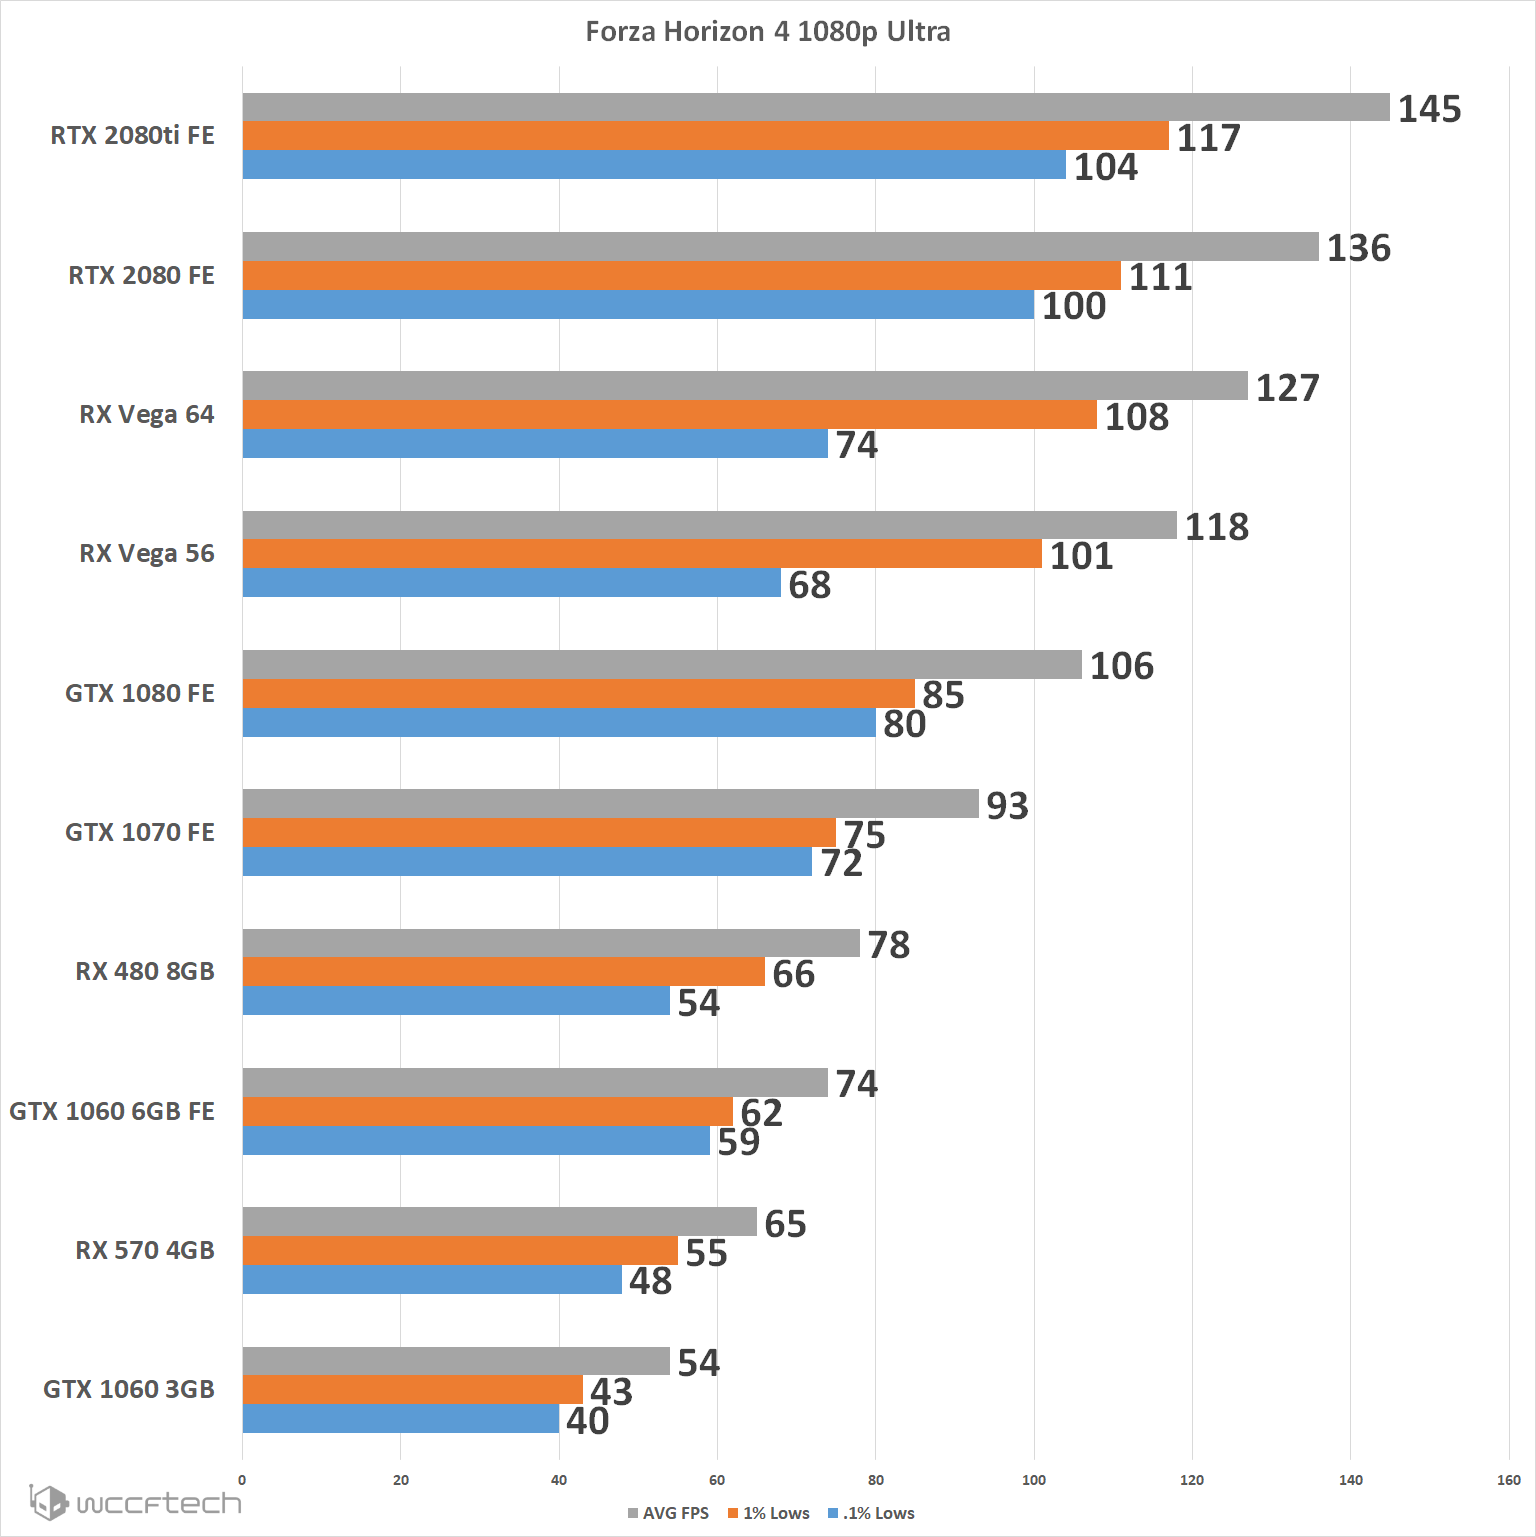 FH4 1080p - Forza Horizon 4 PC Graphics Card Performance Comparison And Core Scaling